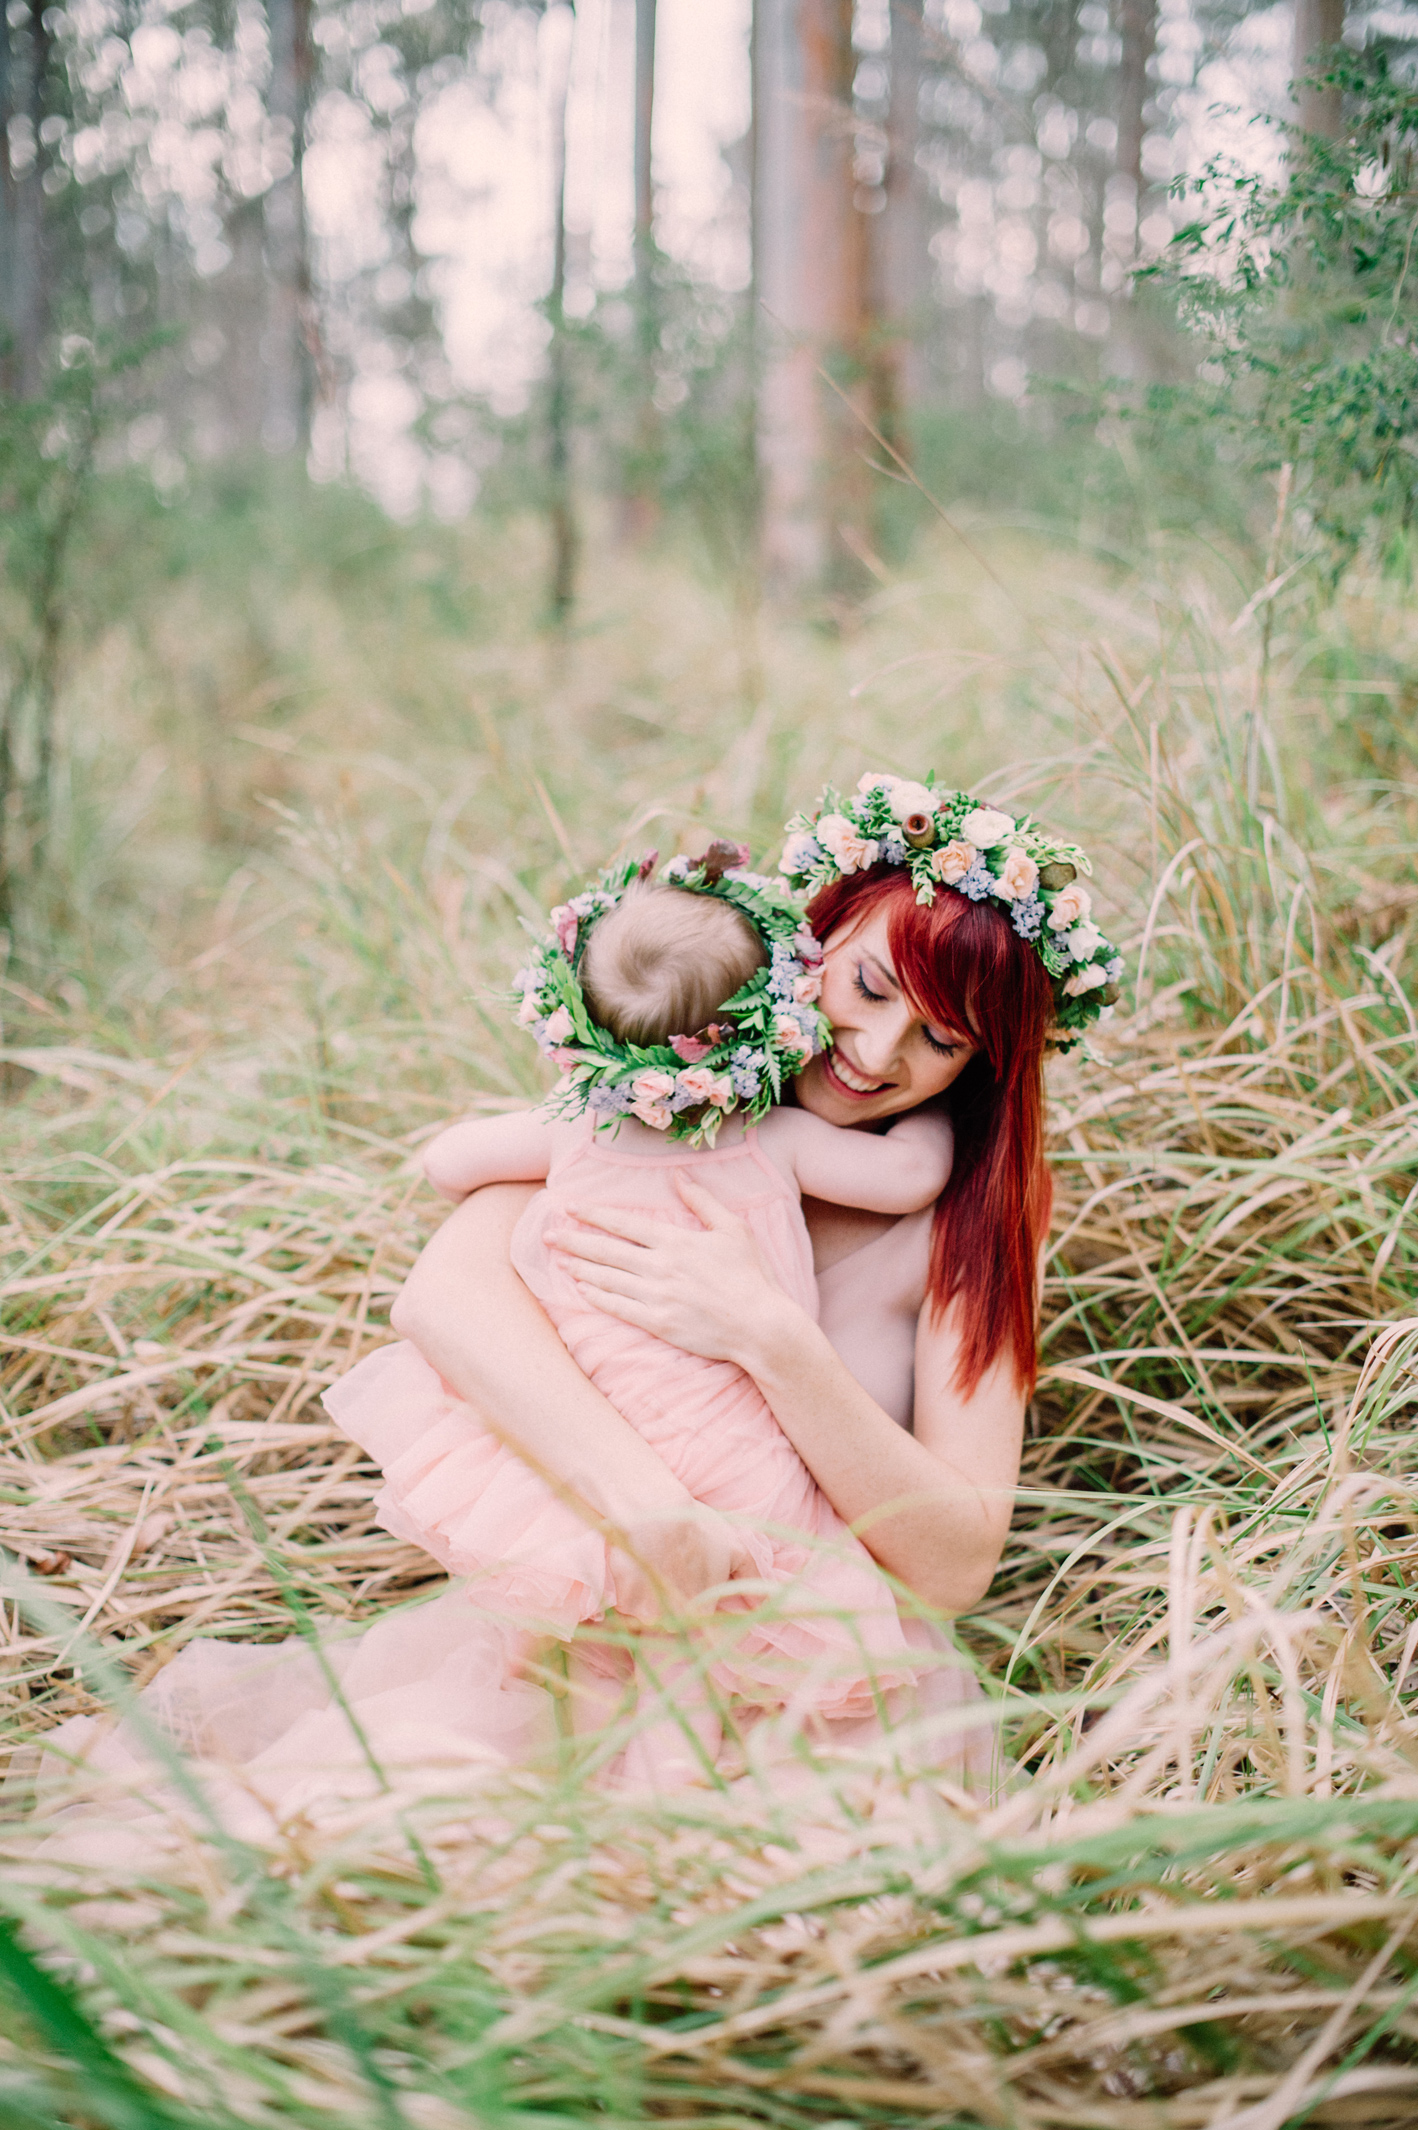 008-family-photos-crown-of-eden-mount-tamborine-sophie-baker-photography